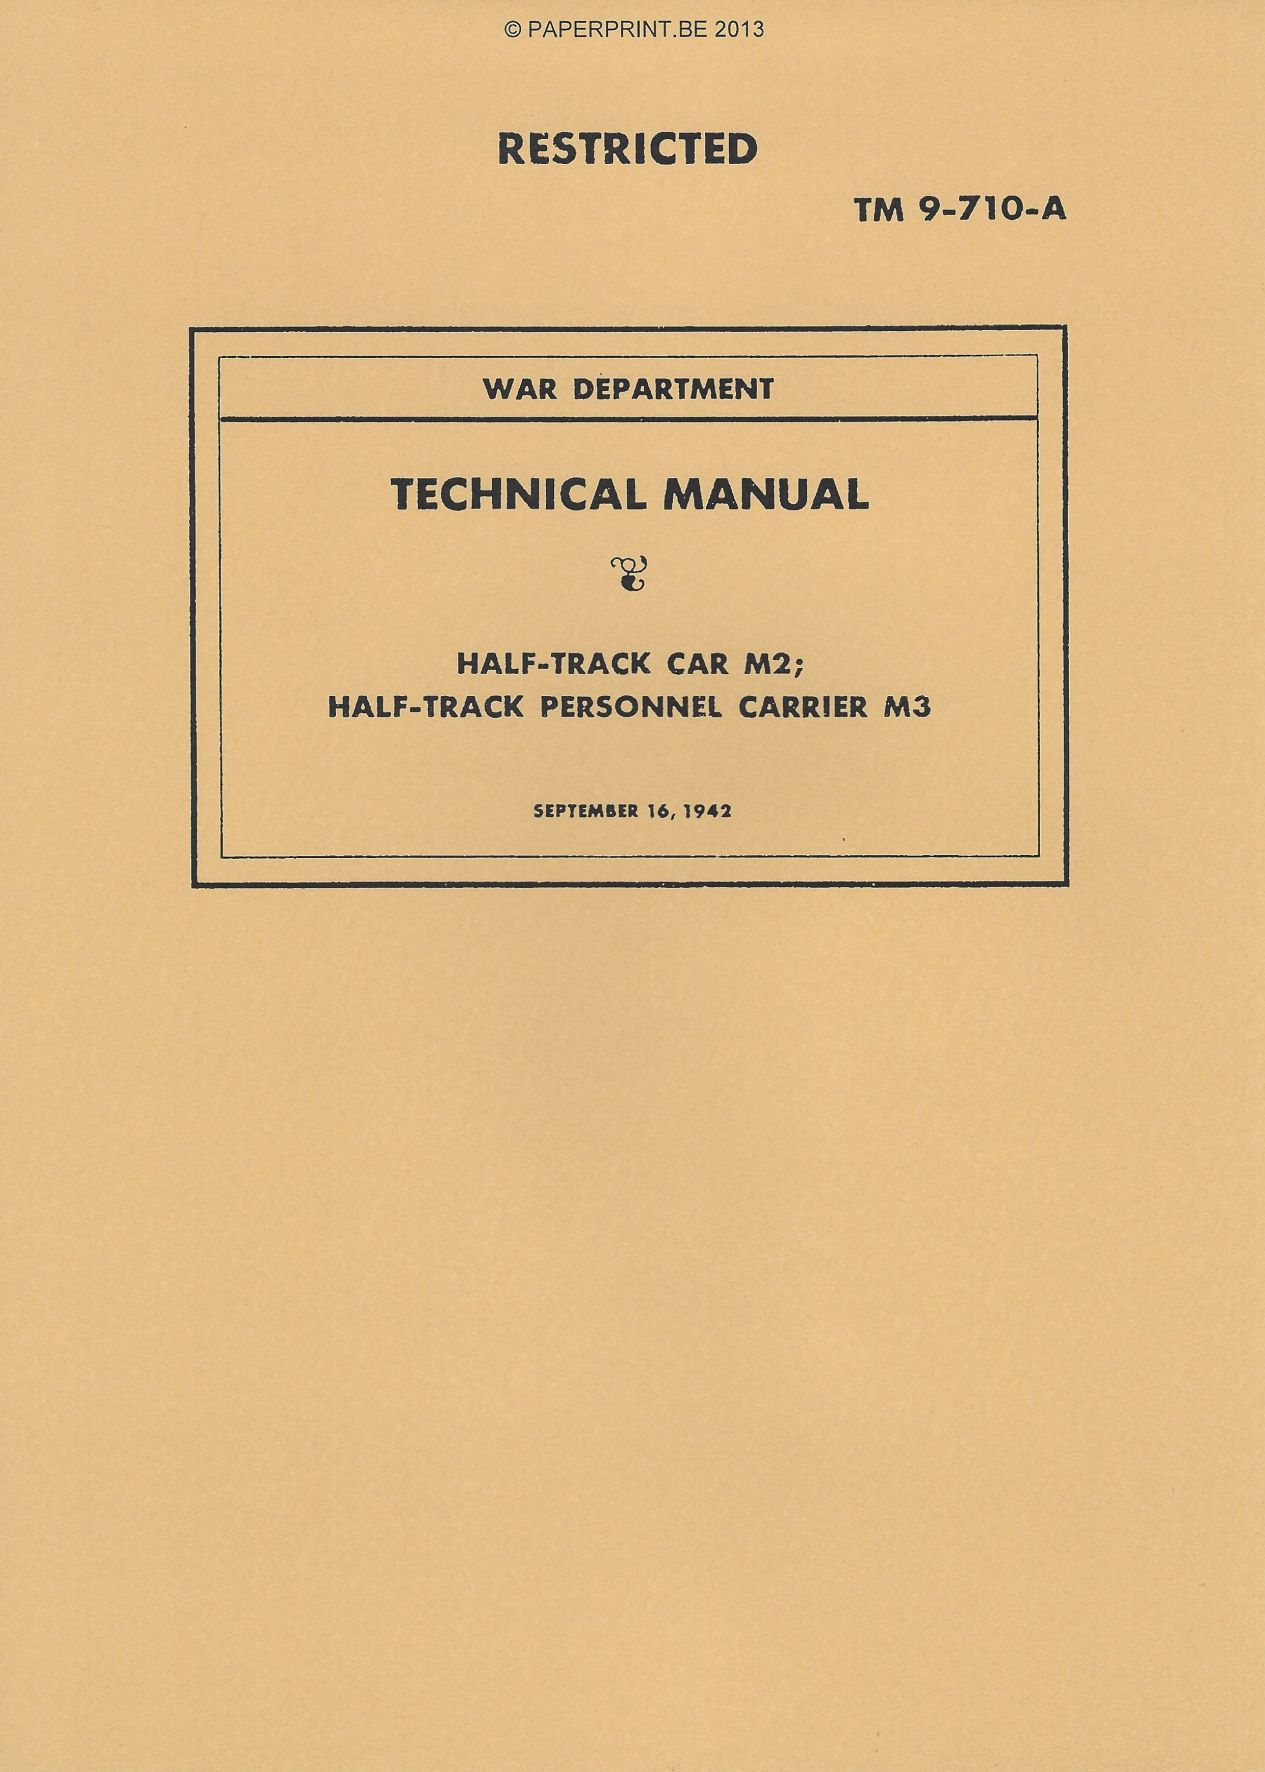 TM 9-710-A US HALF TRACK CAR M2 AND PESONNEL CARRIER M3 MANUAL